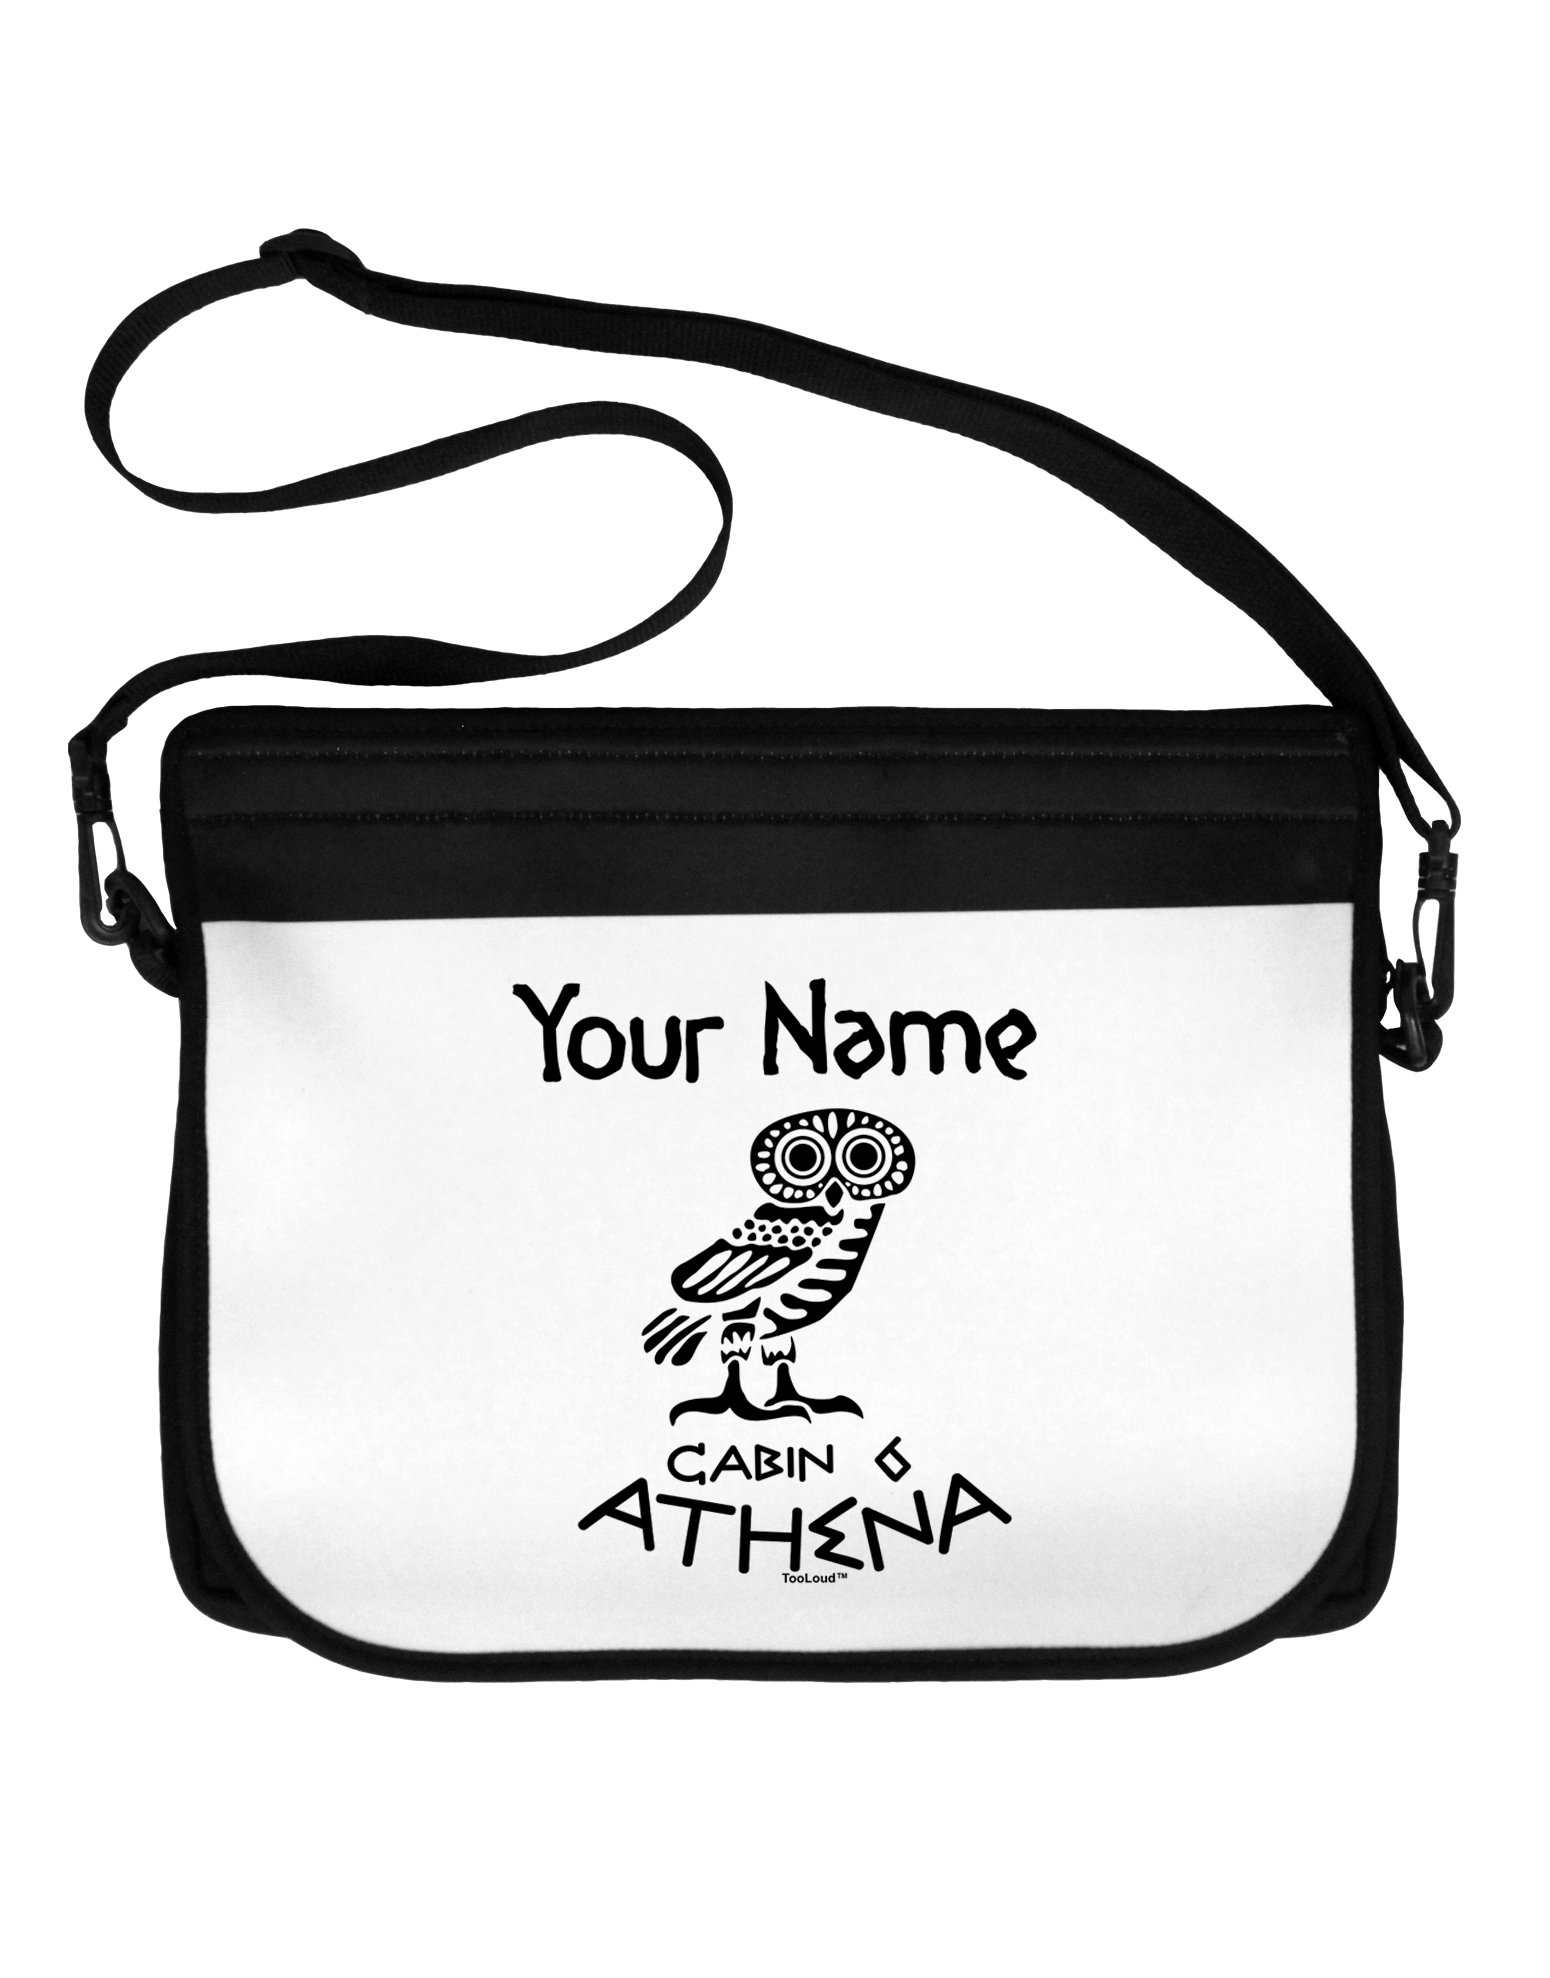 TooLoud Personalized Cabin 6 Athena Neoprene Laptop Shoulder Bag